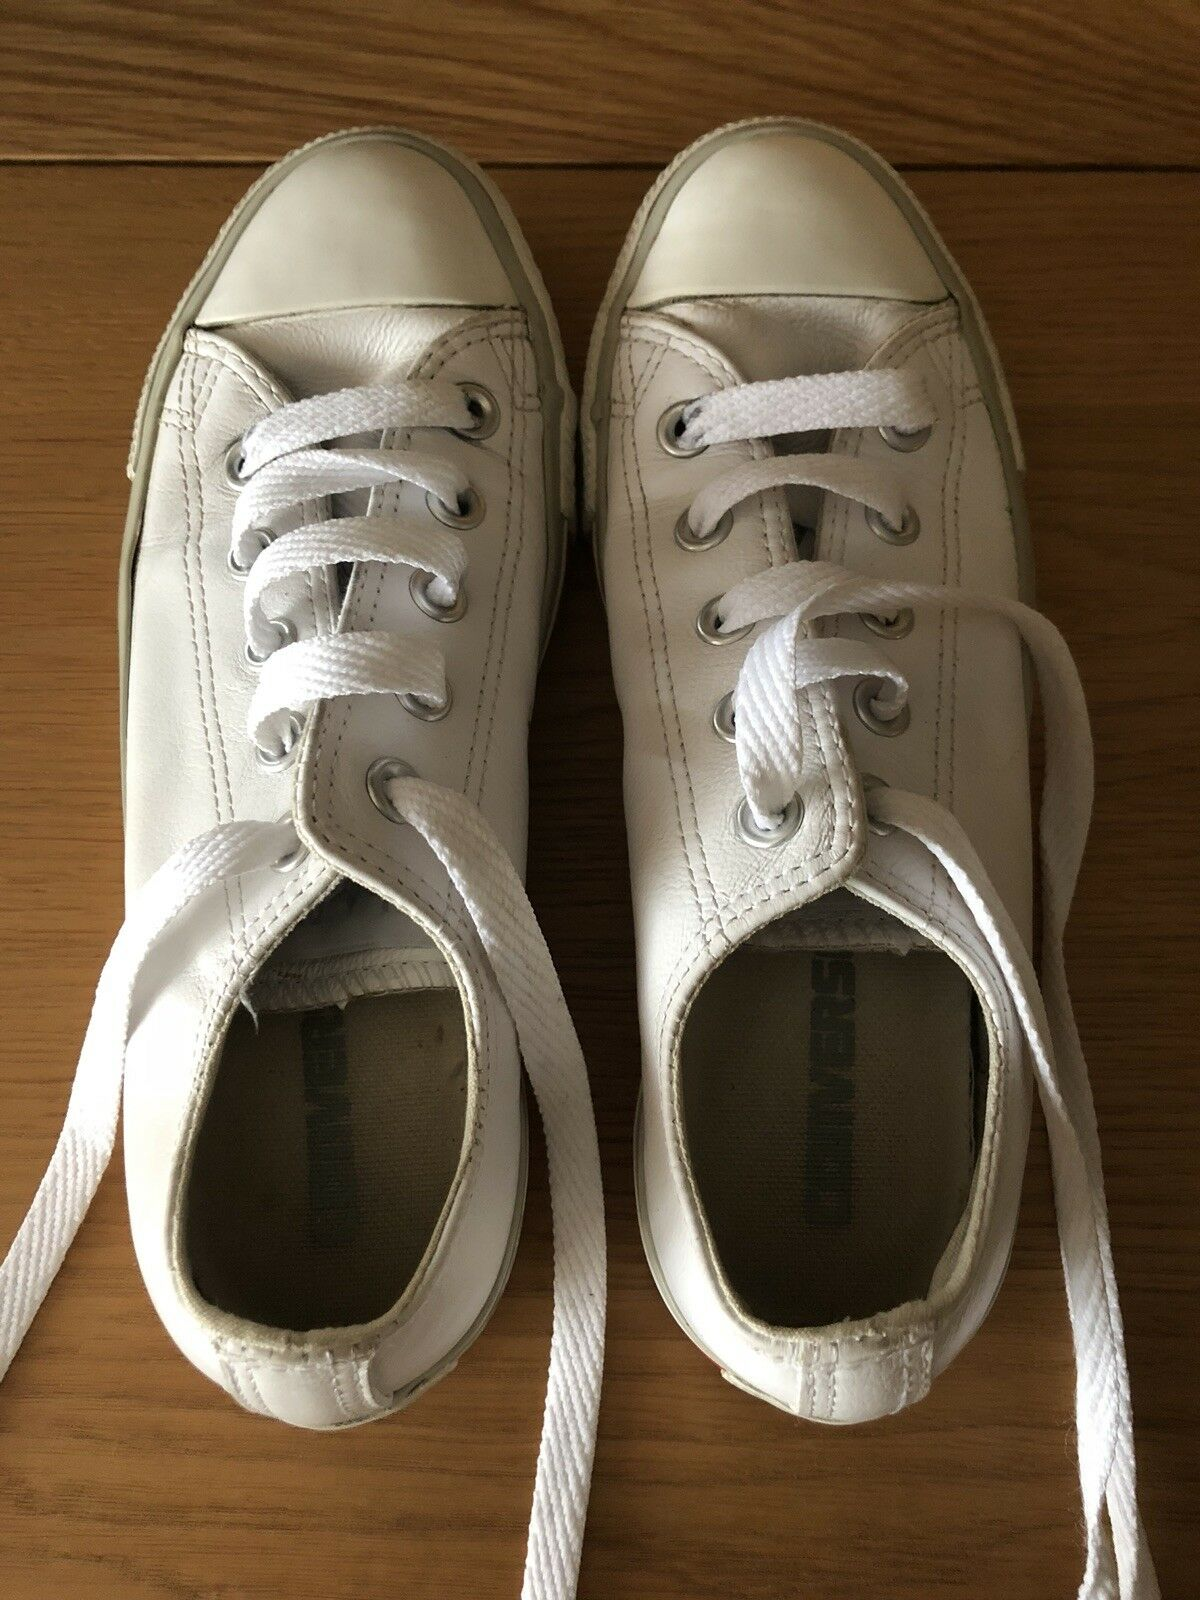 Cuir Blanc Low Top Converse All Star taille 4